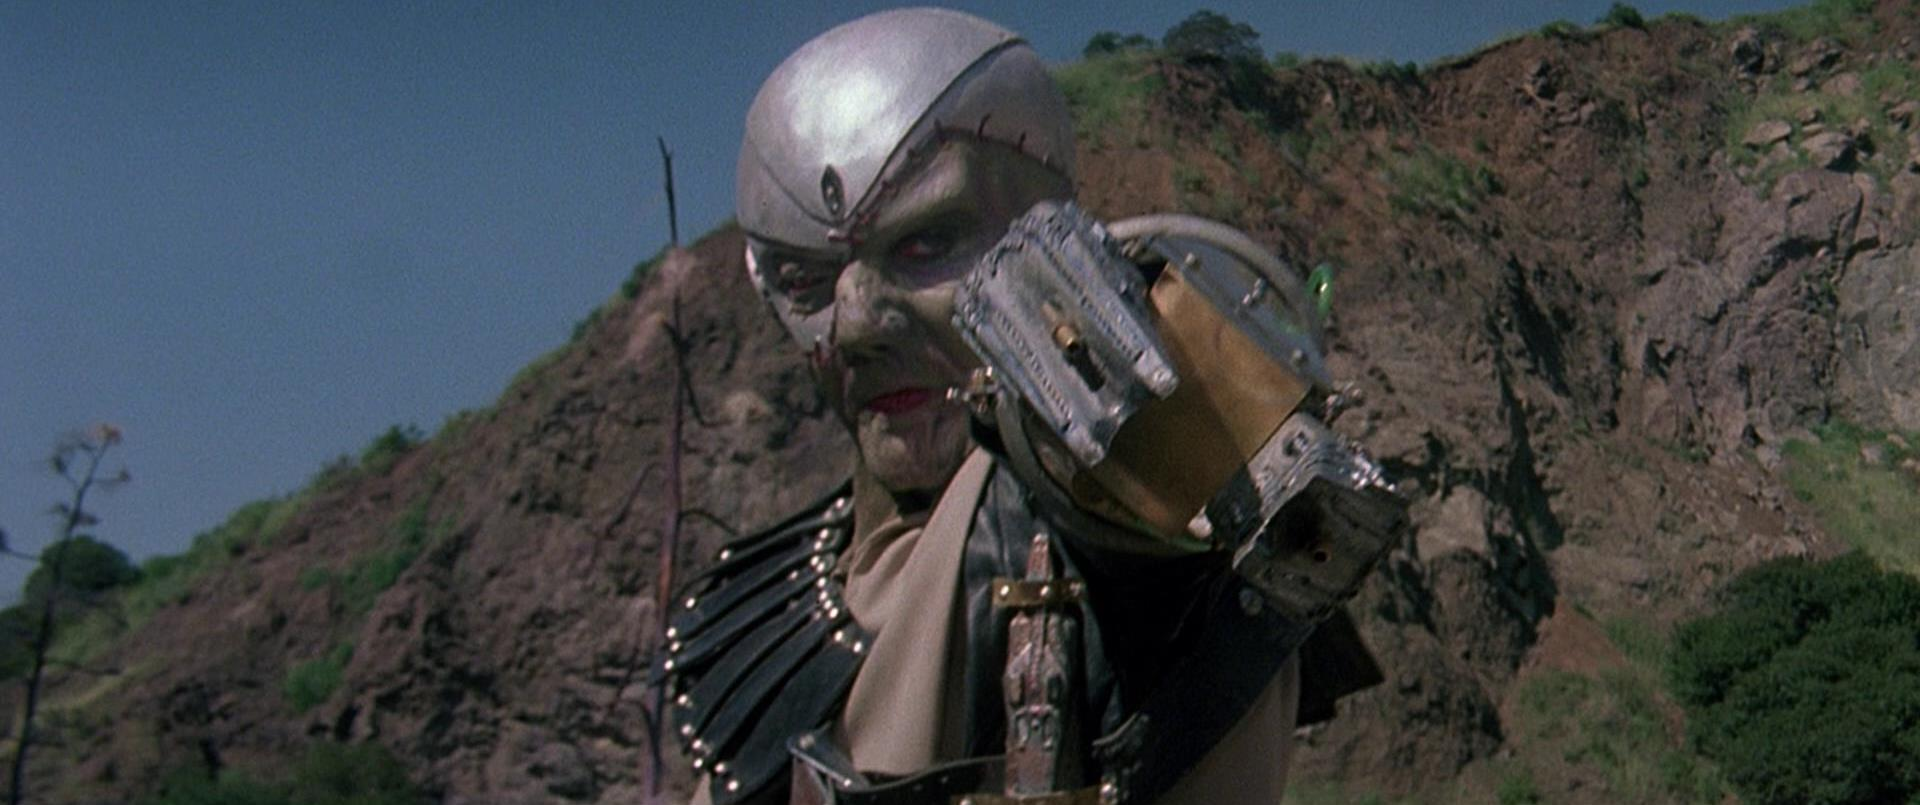 David Smith as Baal in Metalstorm: The Destruction of Jared-Syn (1983)